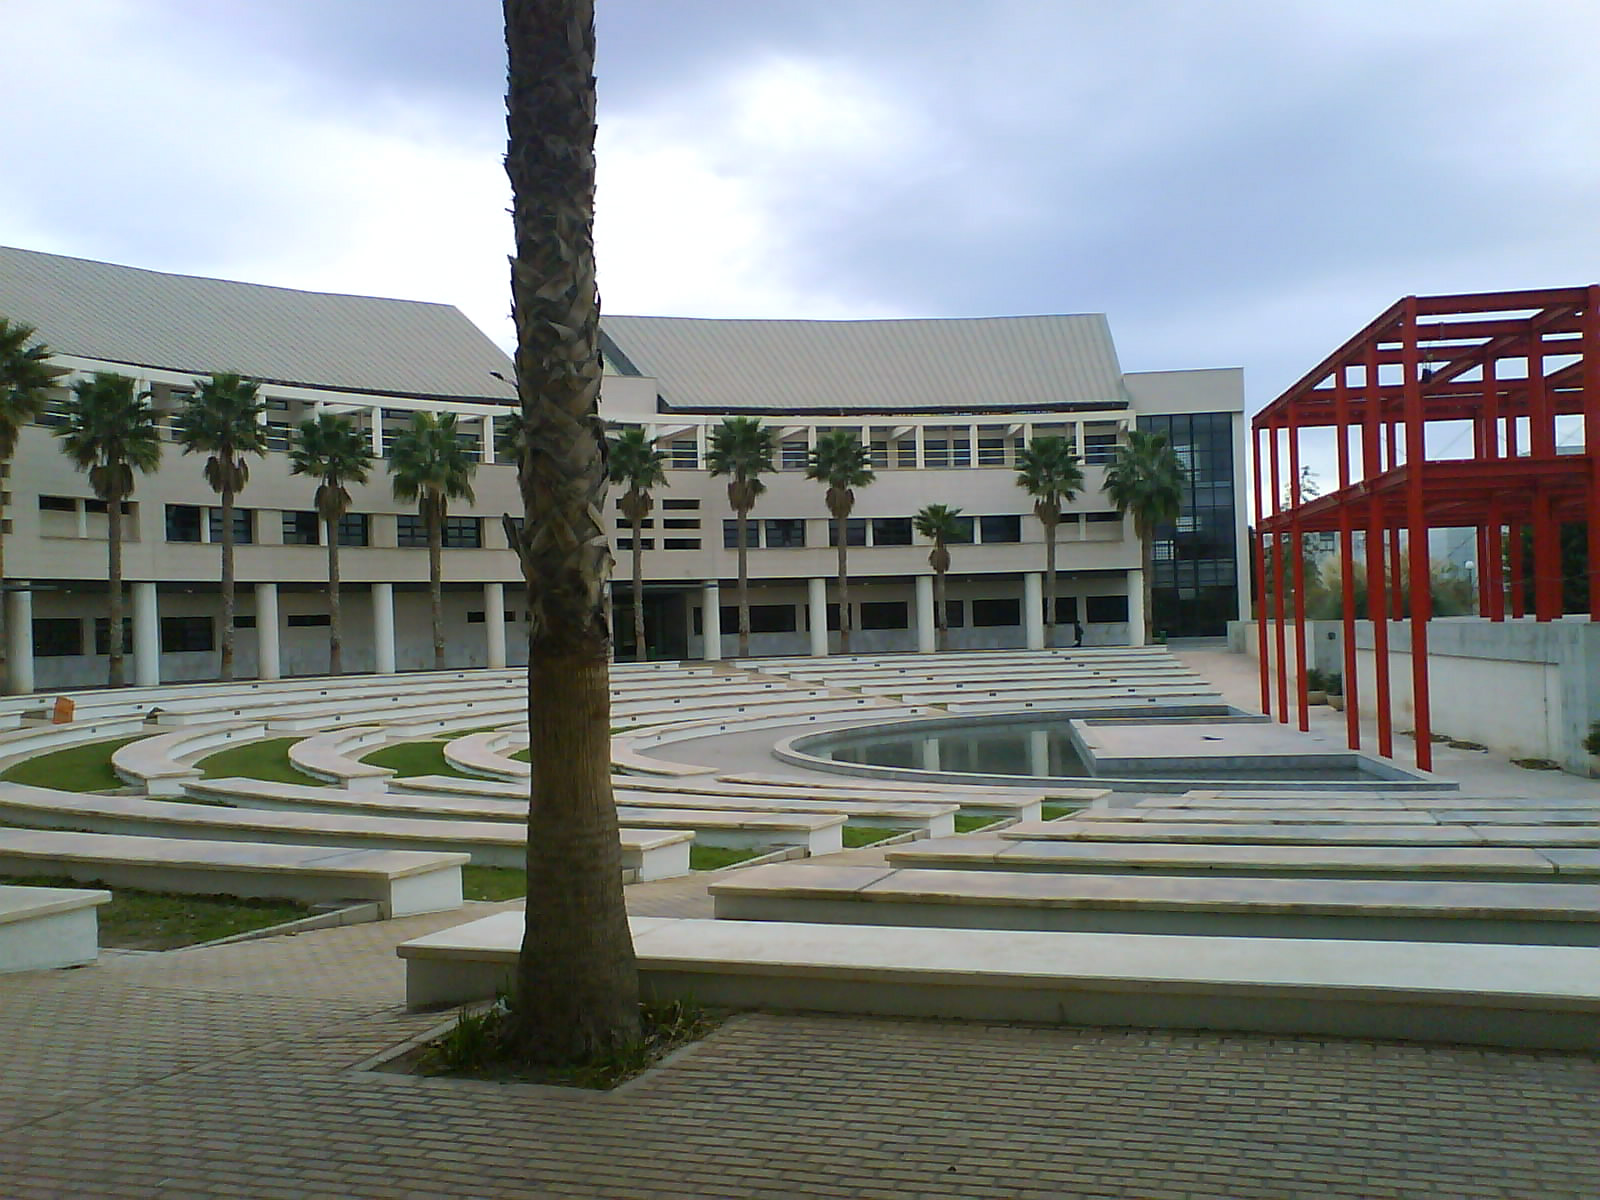 Depiction of Universidad de Alicante